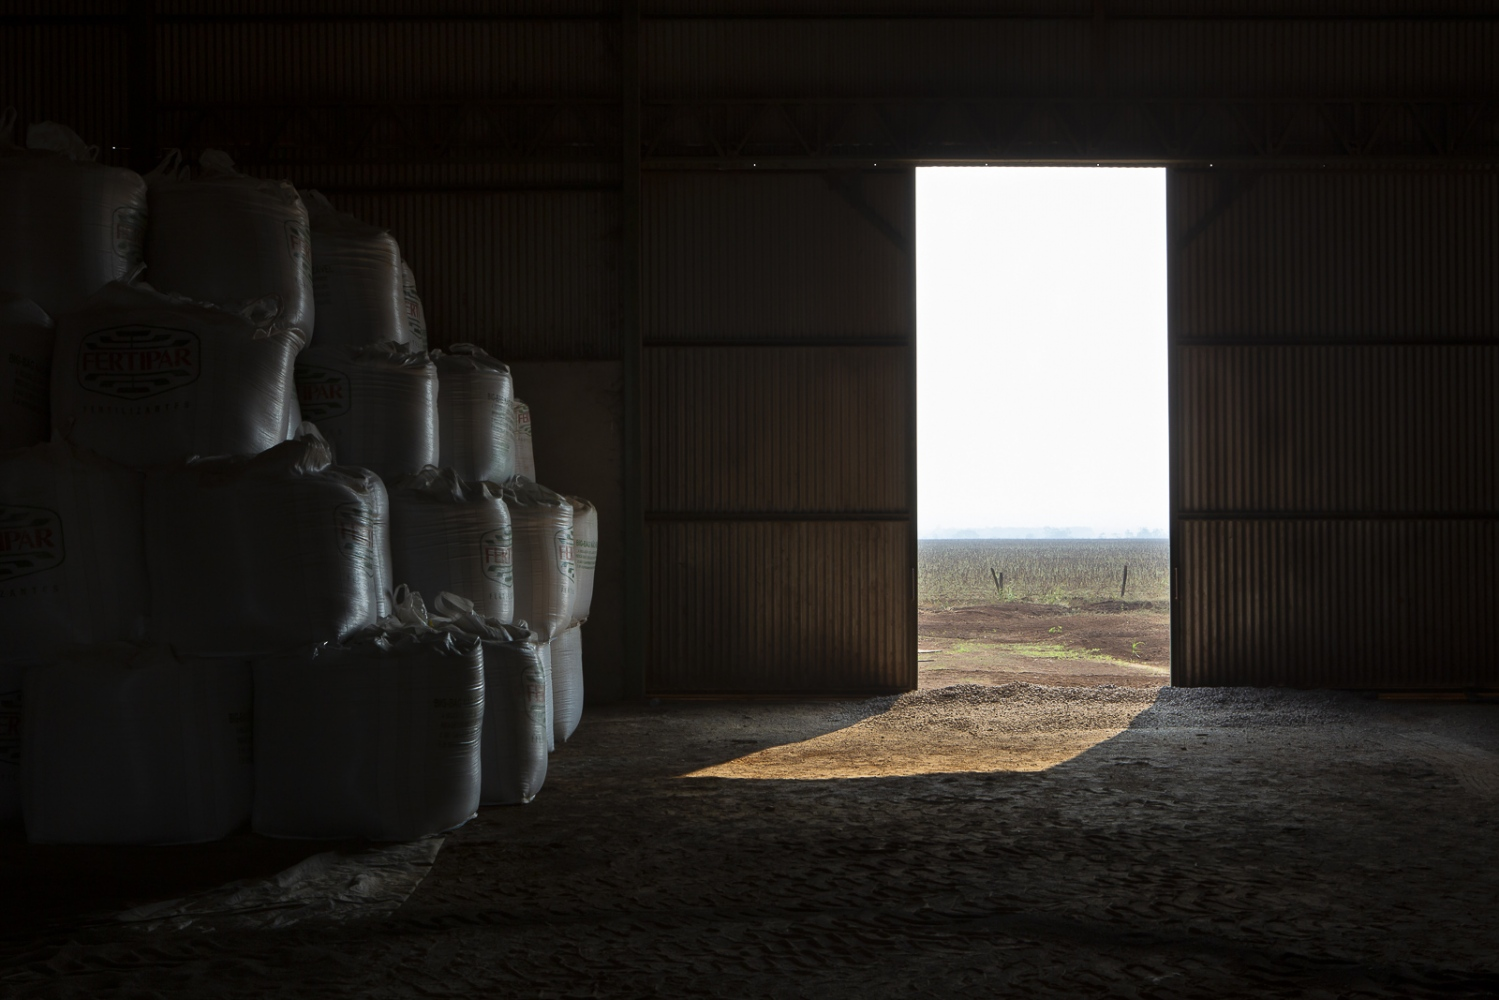 Feed in storage. Soybean meal, corn DDG, cottonseed, ground sorghum, salt and moist corn constitute the cattle feed on this farm. To 30,000 animals, 205 tonnes of feed are served daily. Pontes e Lacerda, Brazil, 2015